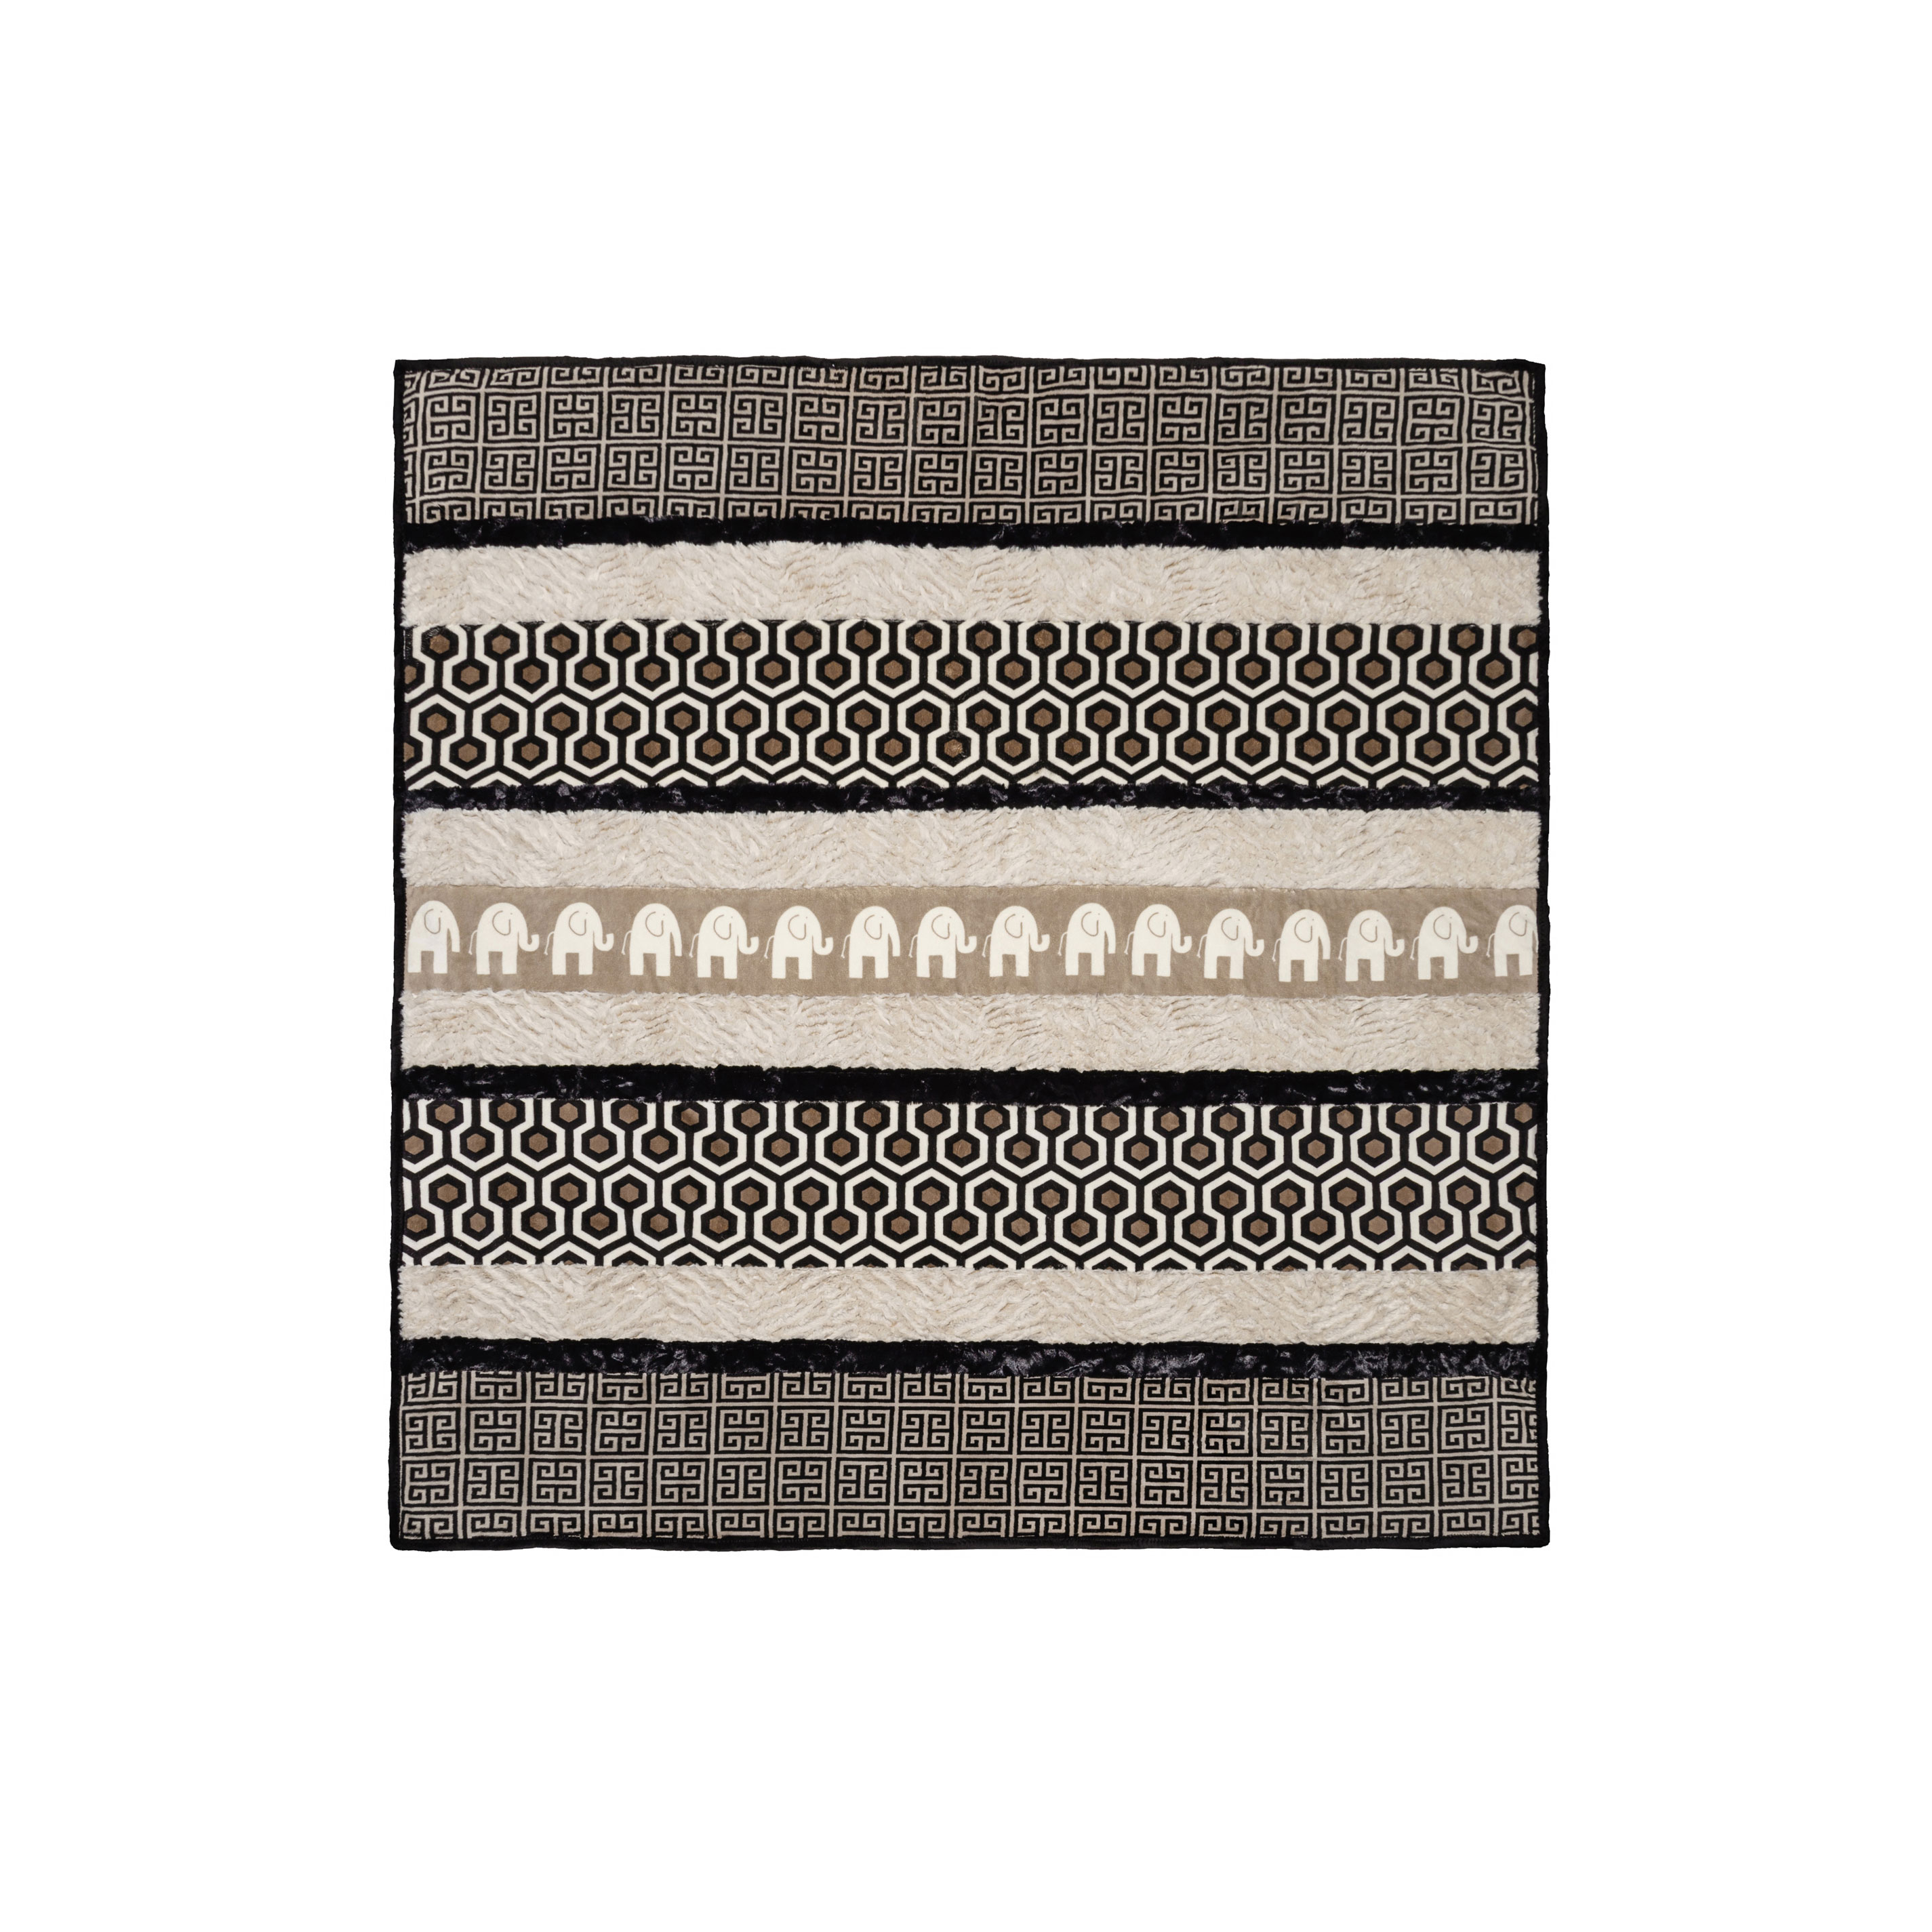 Shannon Minky Cuddle Quilt Kit Crazy 8 Dolce Luxe